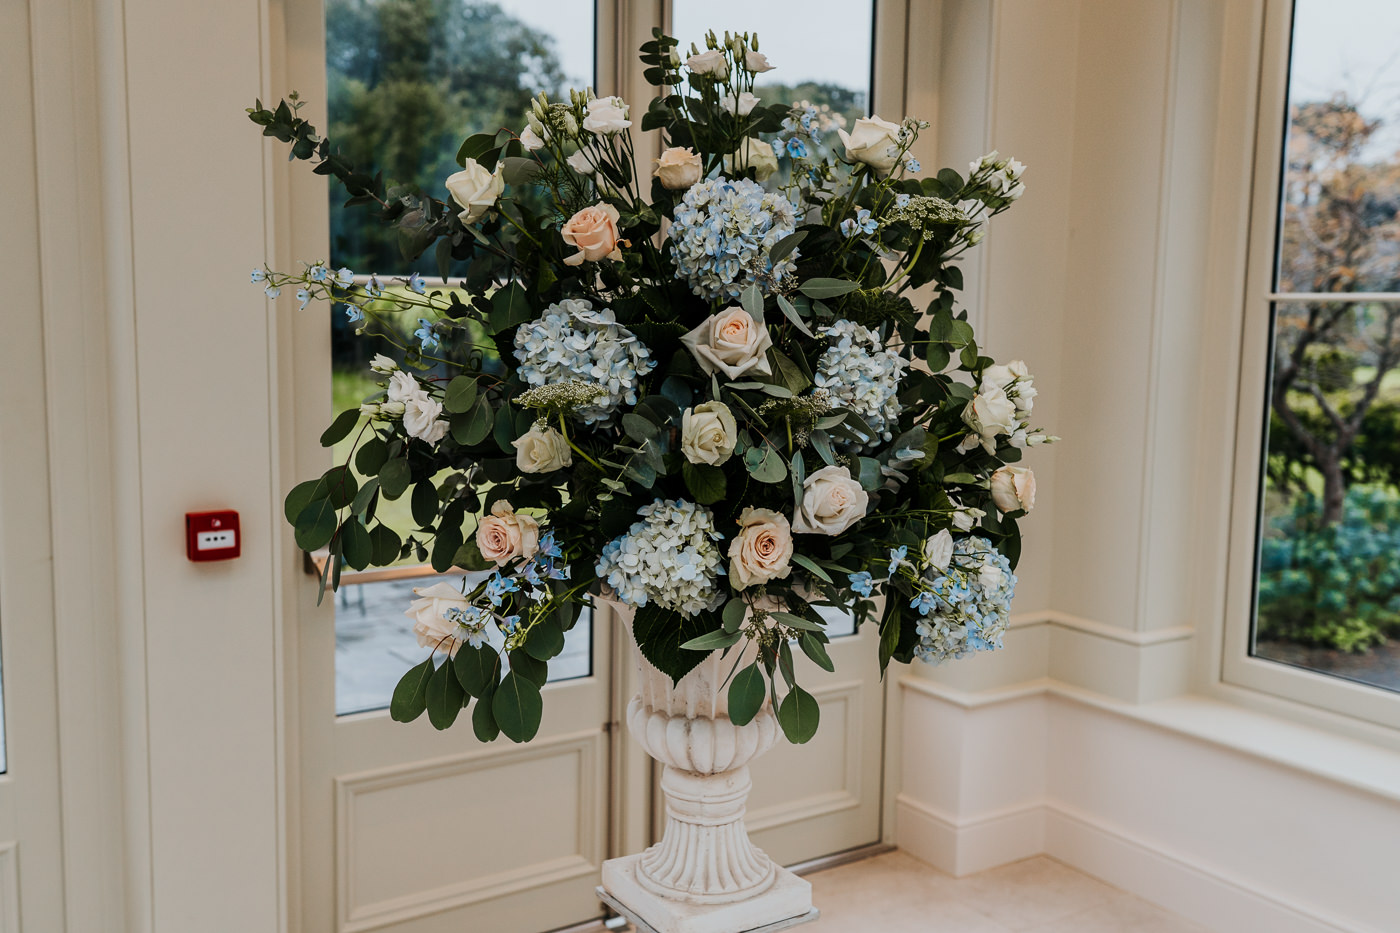 Daisy Lane Floral Design pale blue and blush large urn arrangement